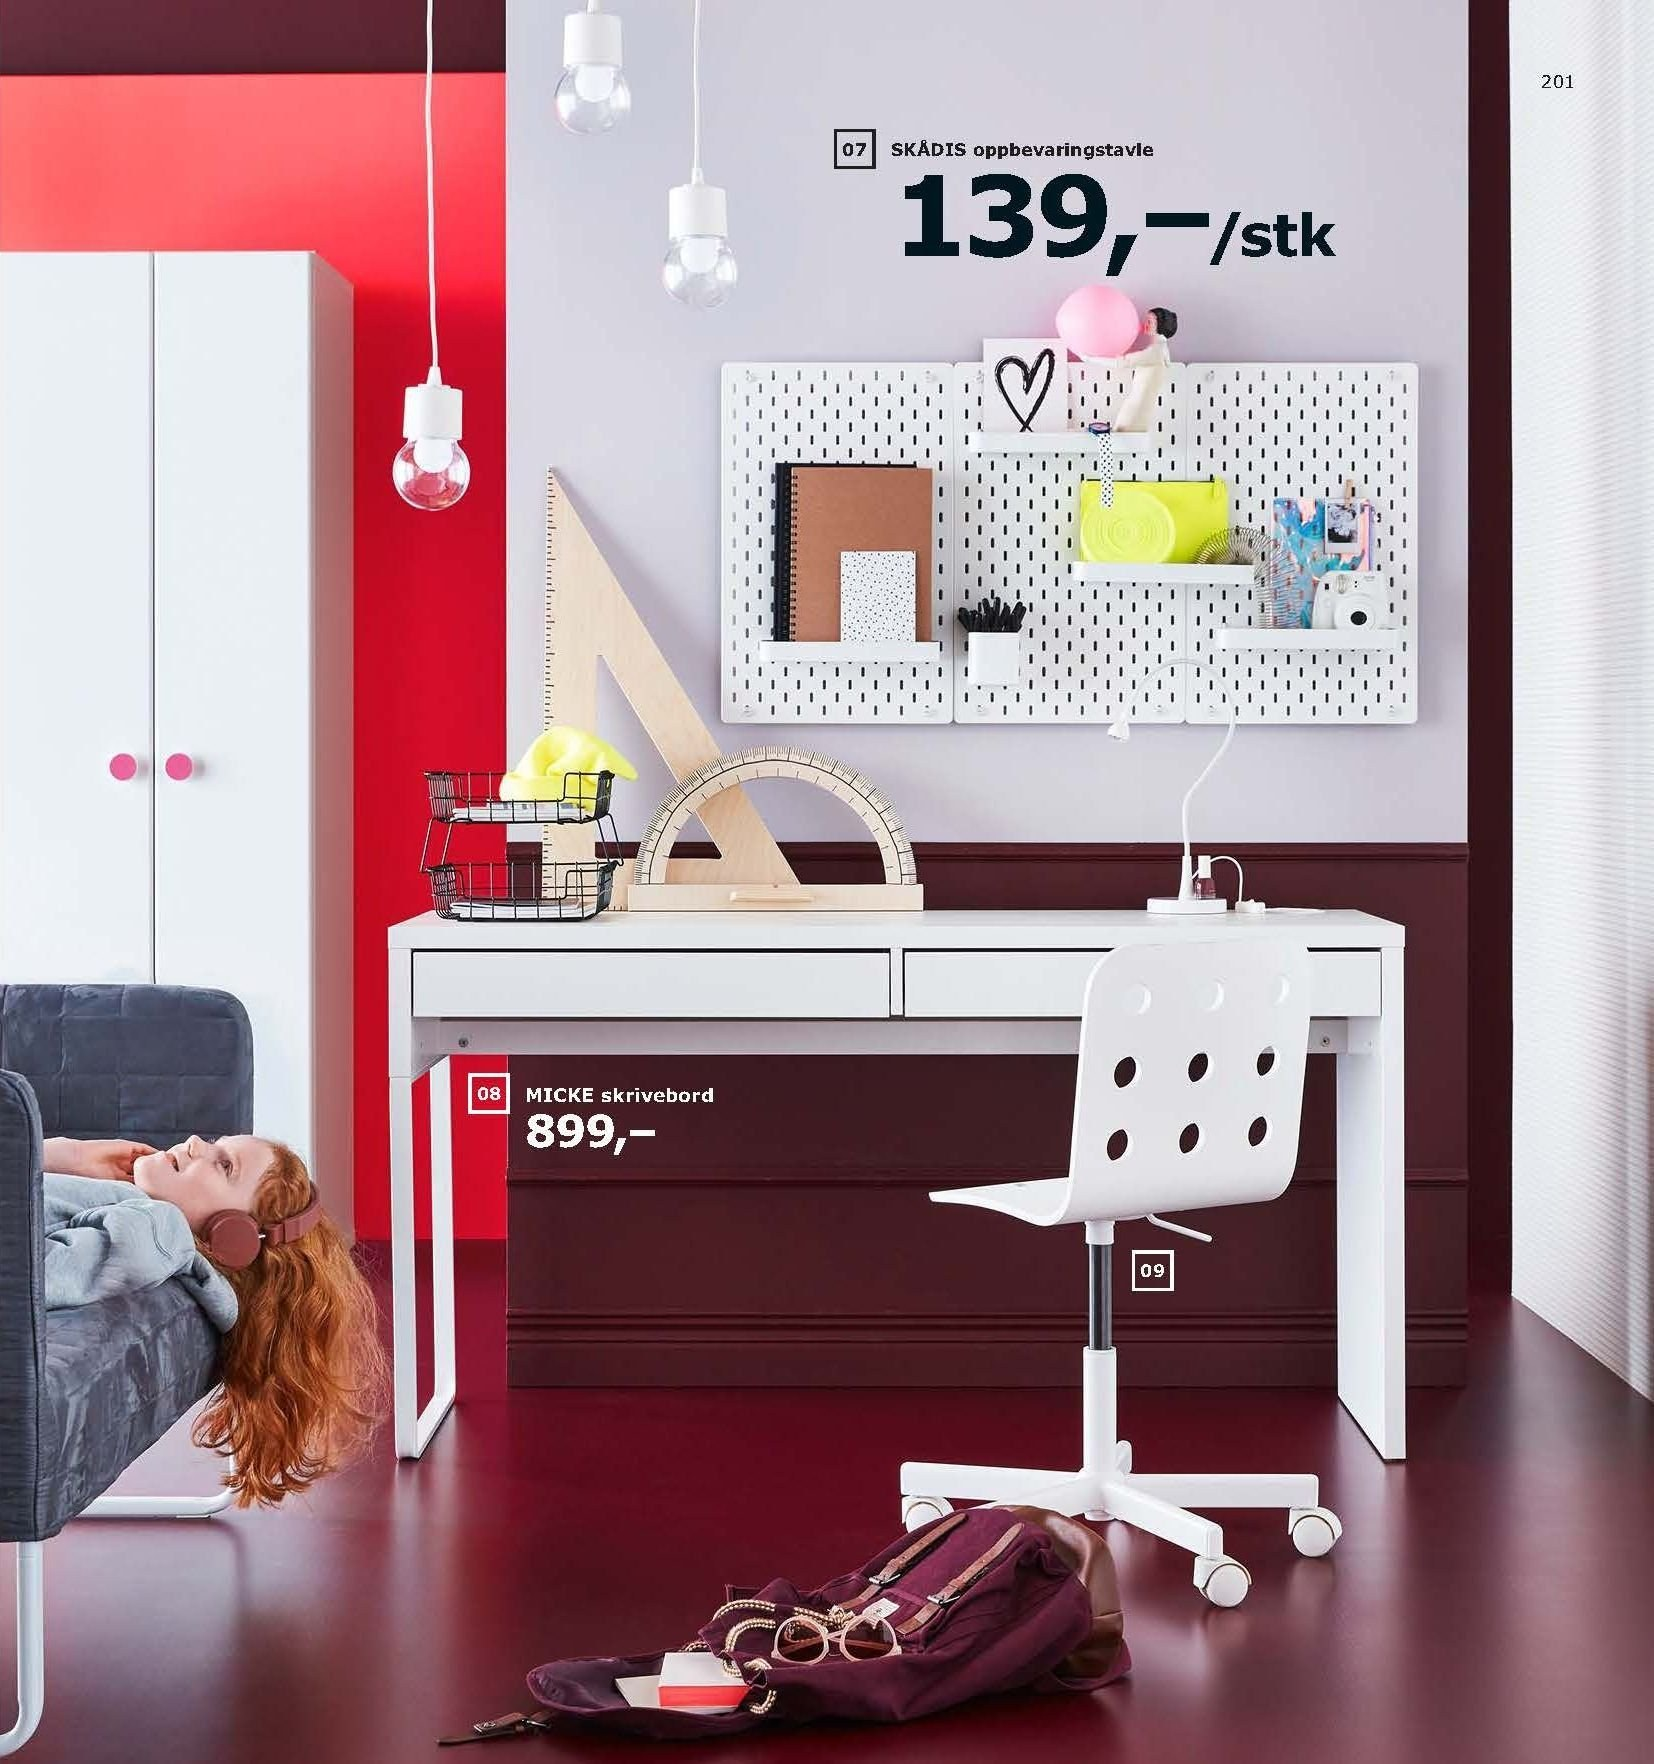 Kundeavis IKEA - 21.08.2018 - 11.08.2019. Side 201.